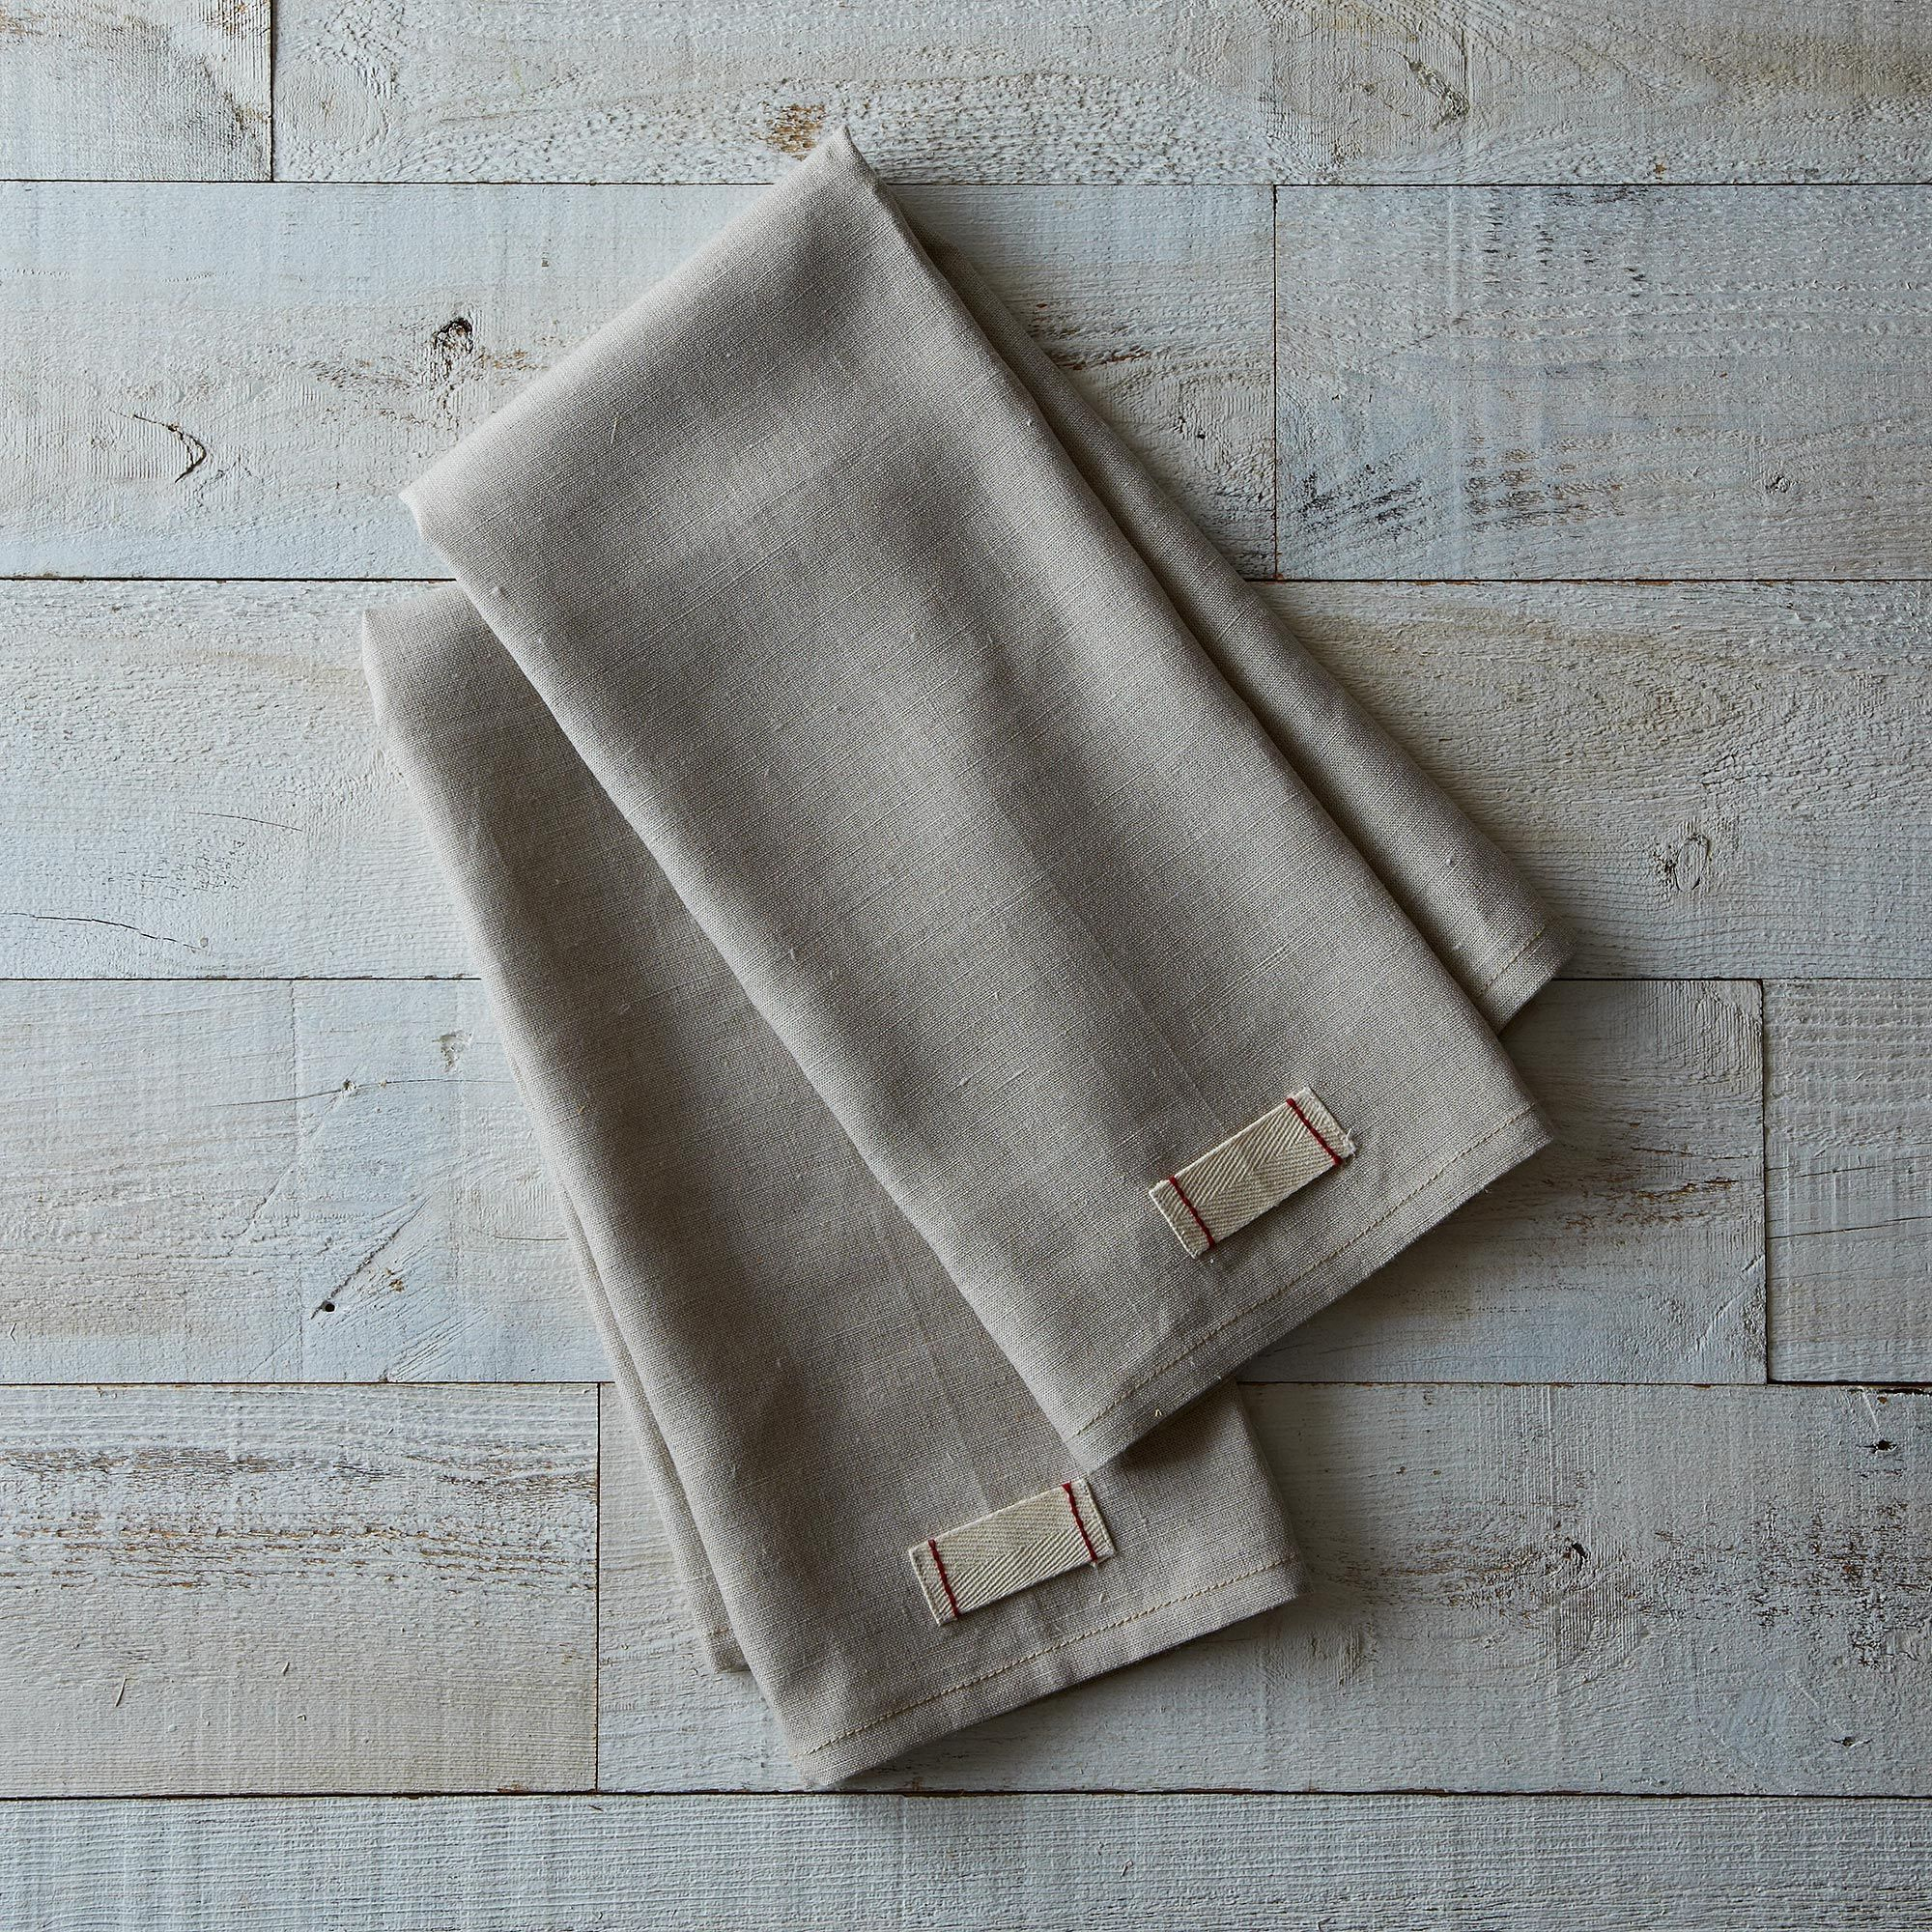 B2d65d10-5217-4901-bf9b-e7abe55f7bab--2013-0930_icemilk-aprons_heirloomed-linen-tea-towels_set-of-2-021